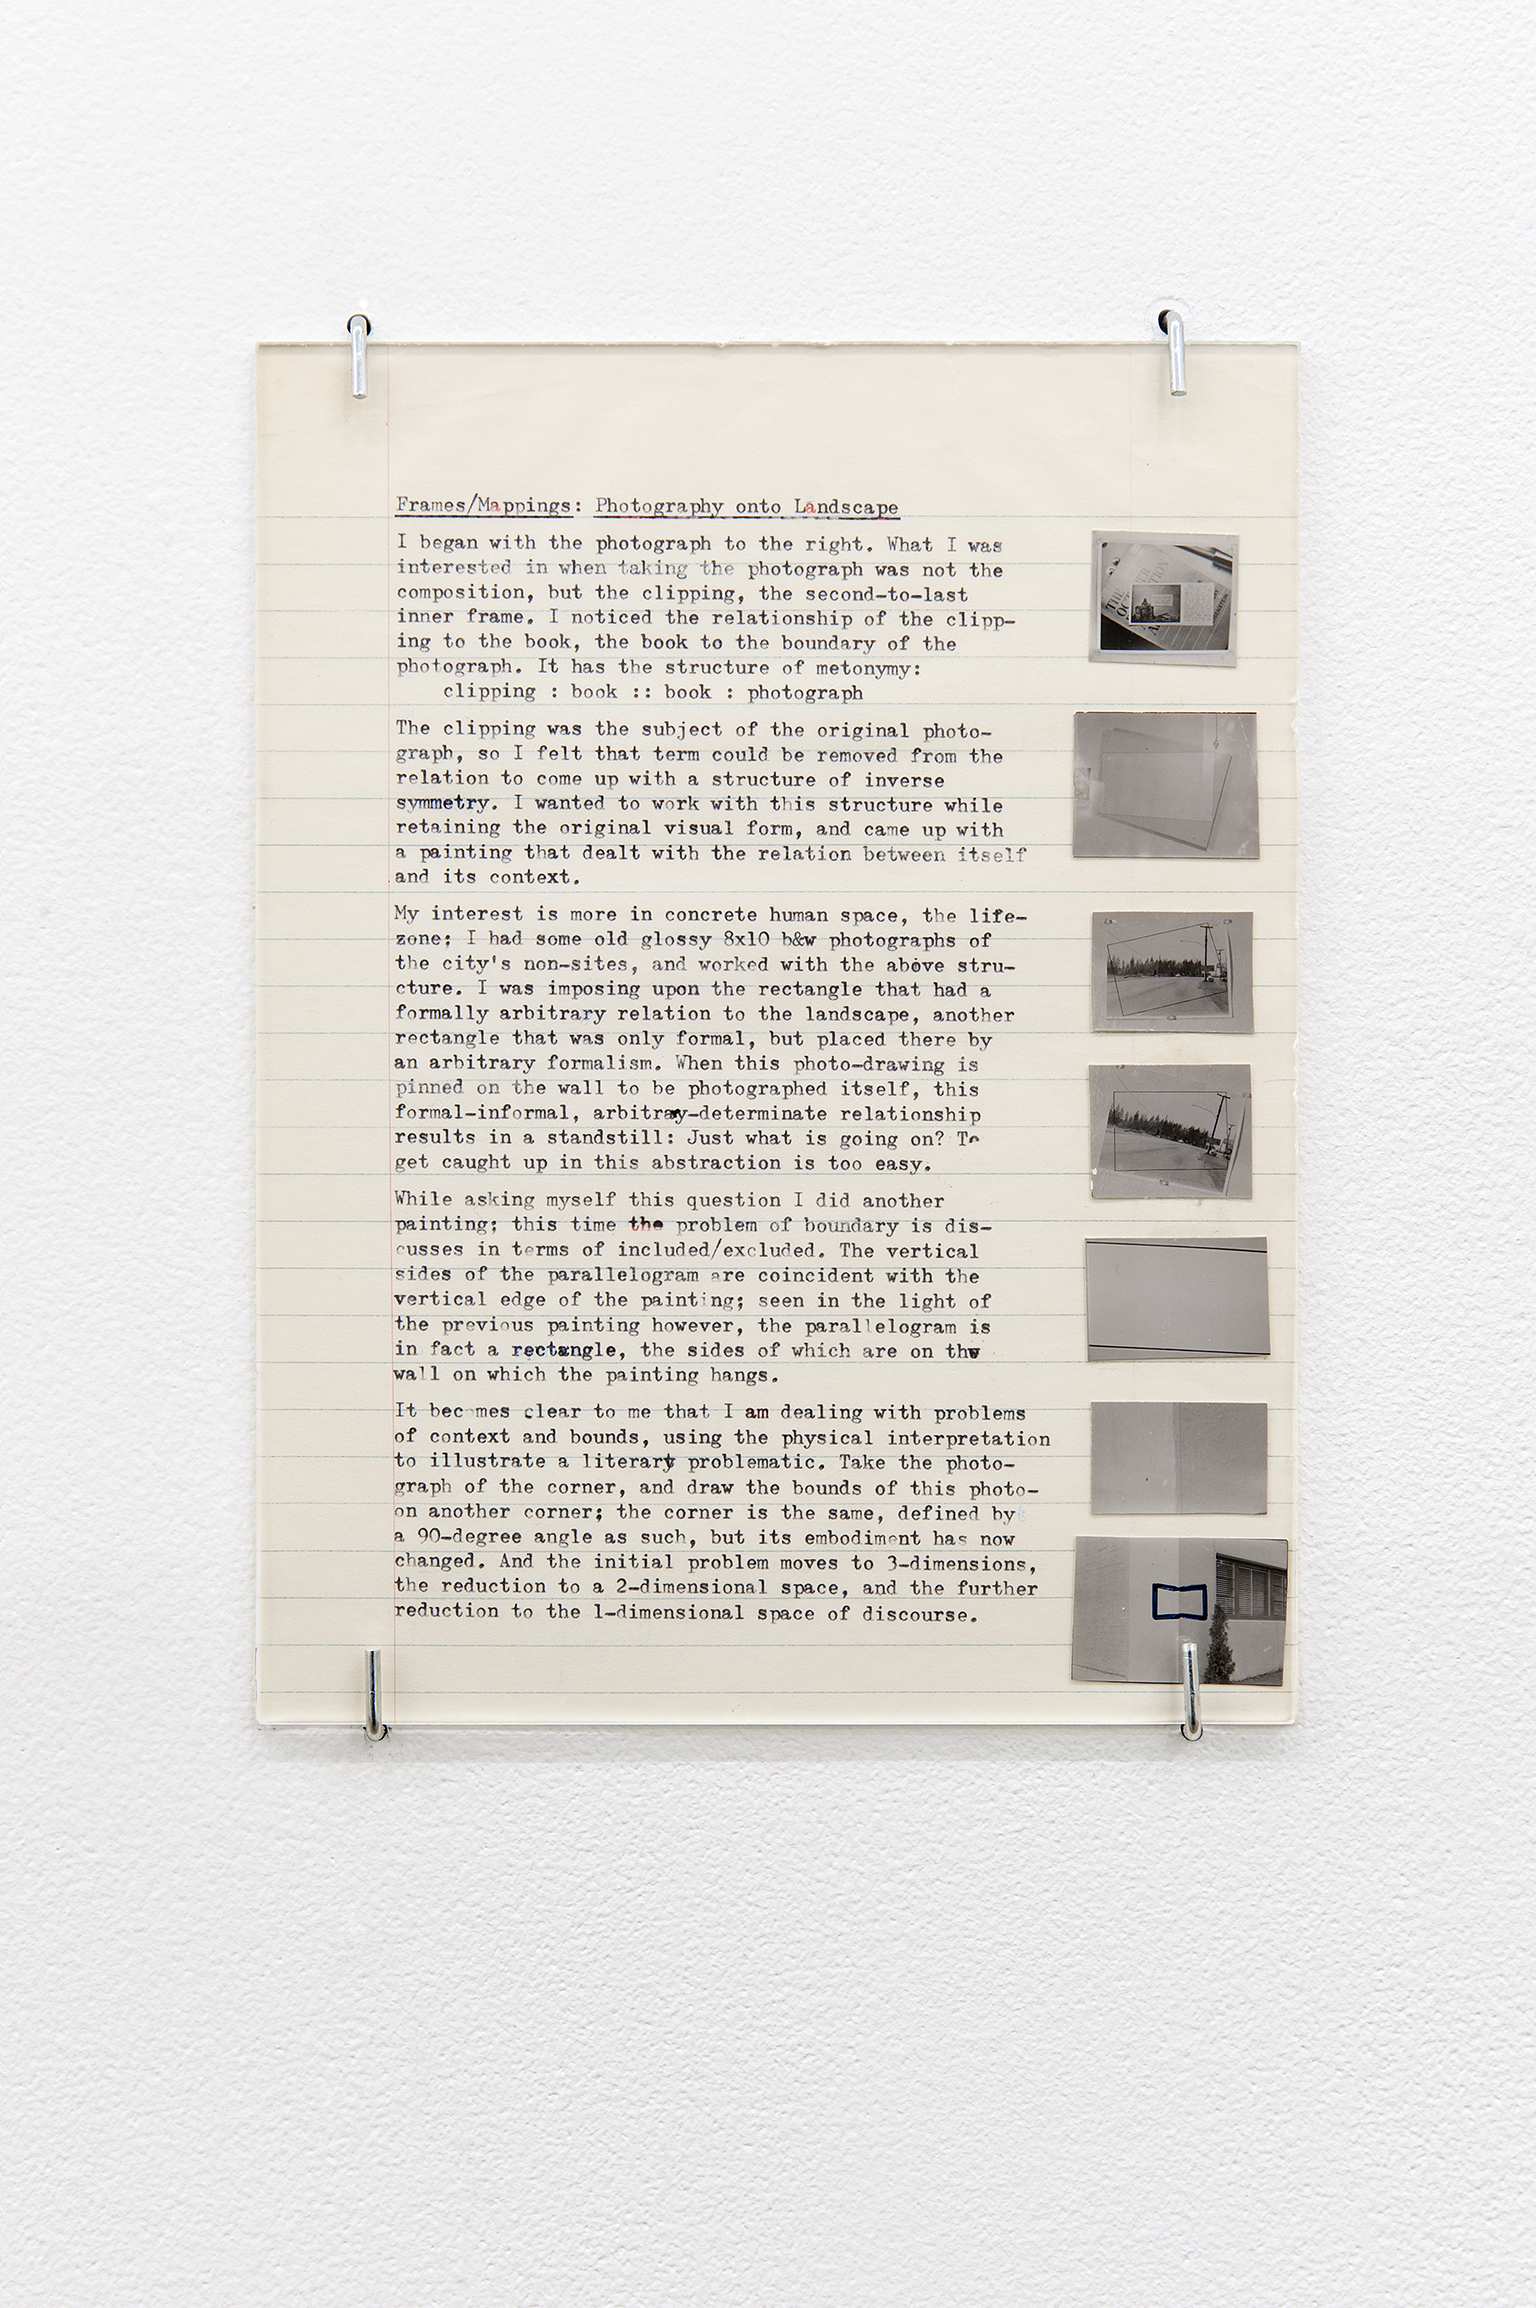 Robert Kleyn, Frames/Mappings: Photography onto Landscape, 1972, typescript, photographs on paper, 9 x 7 in. (23 x 18 cm)   by